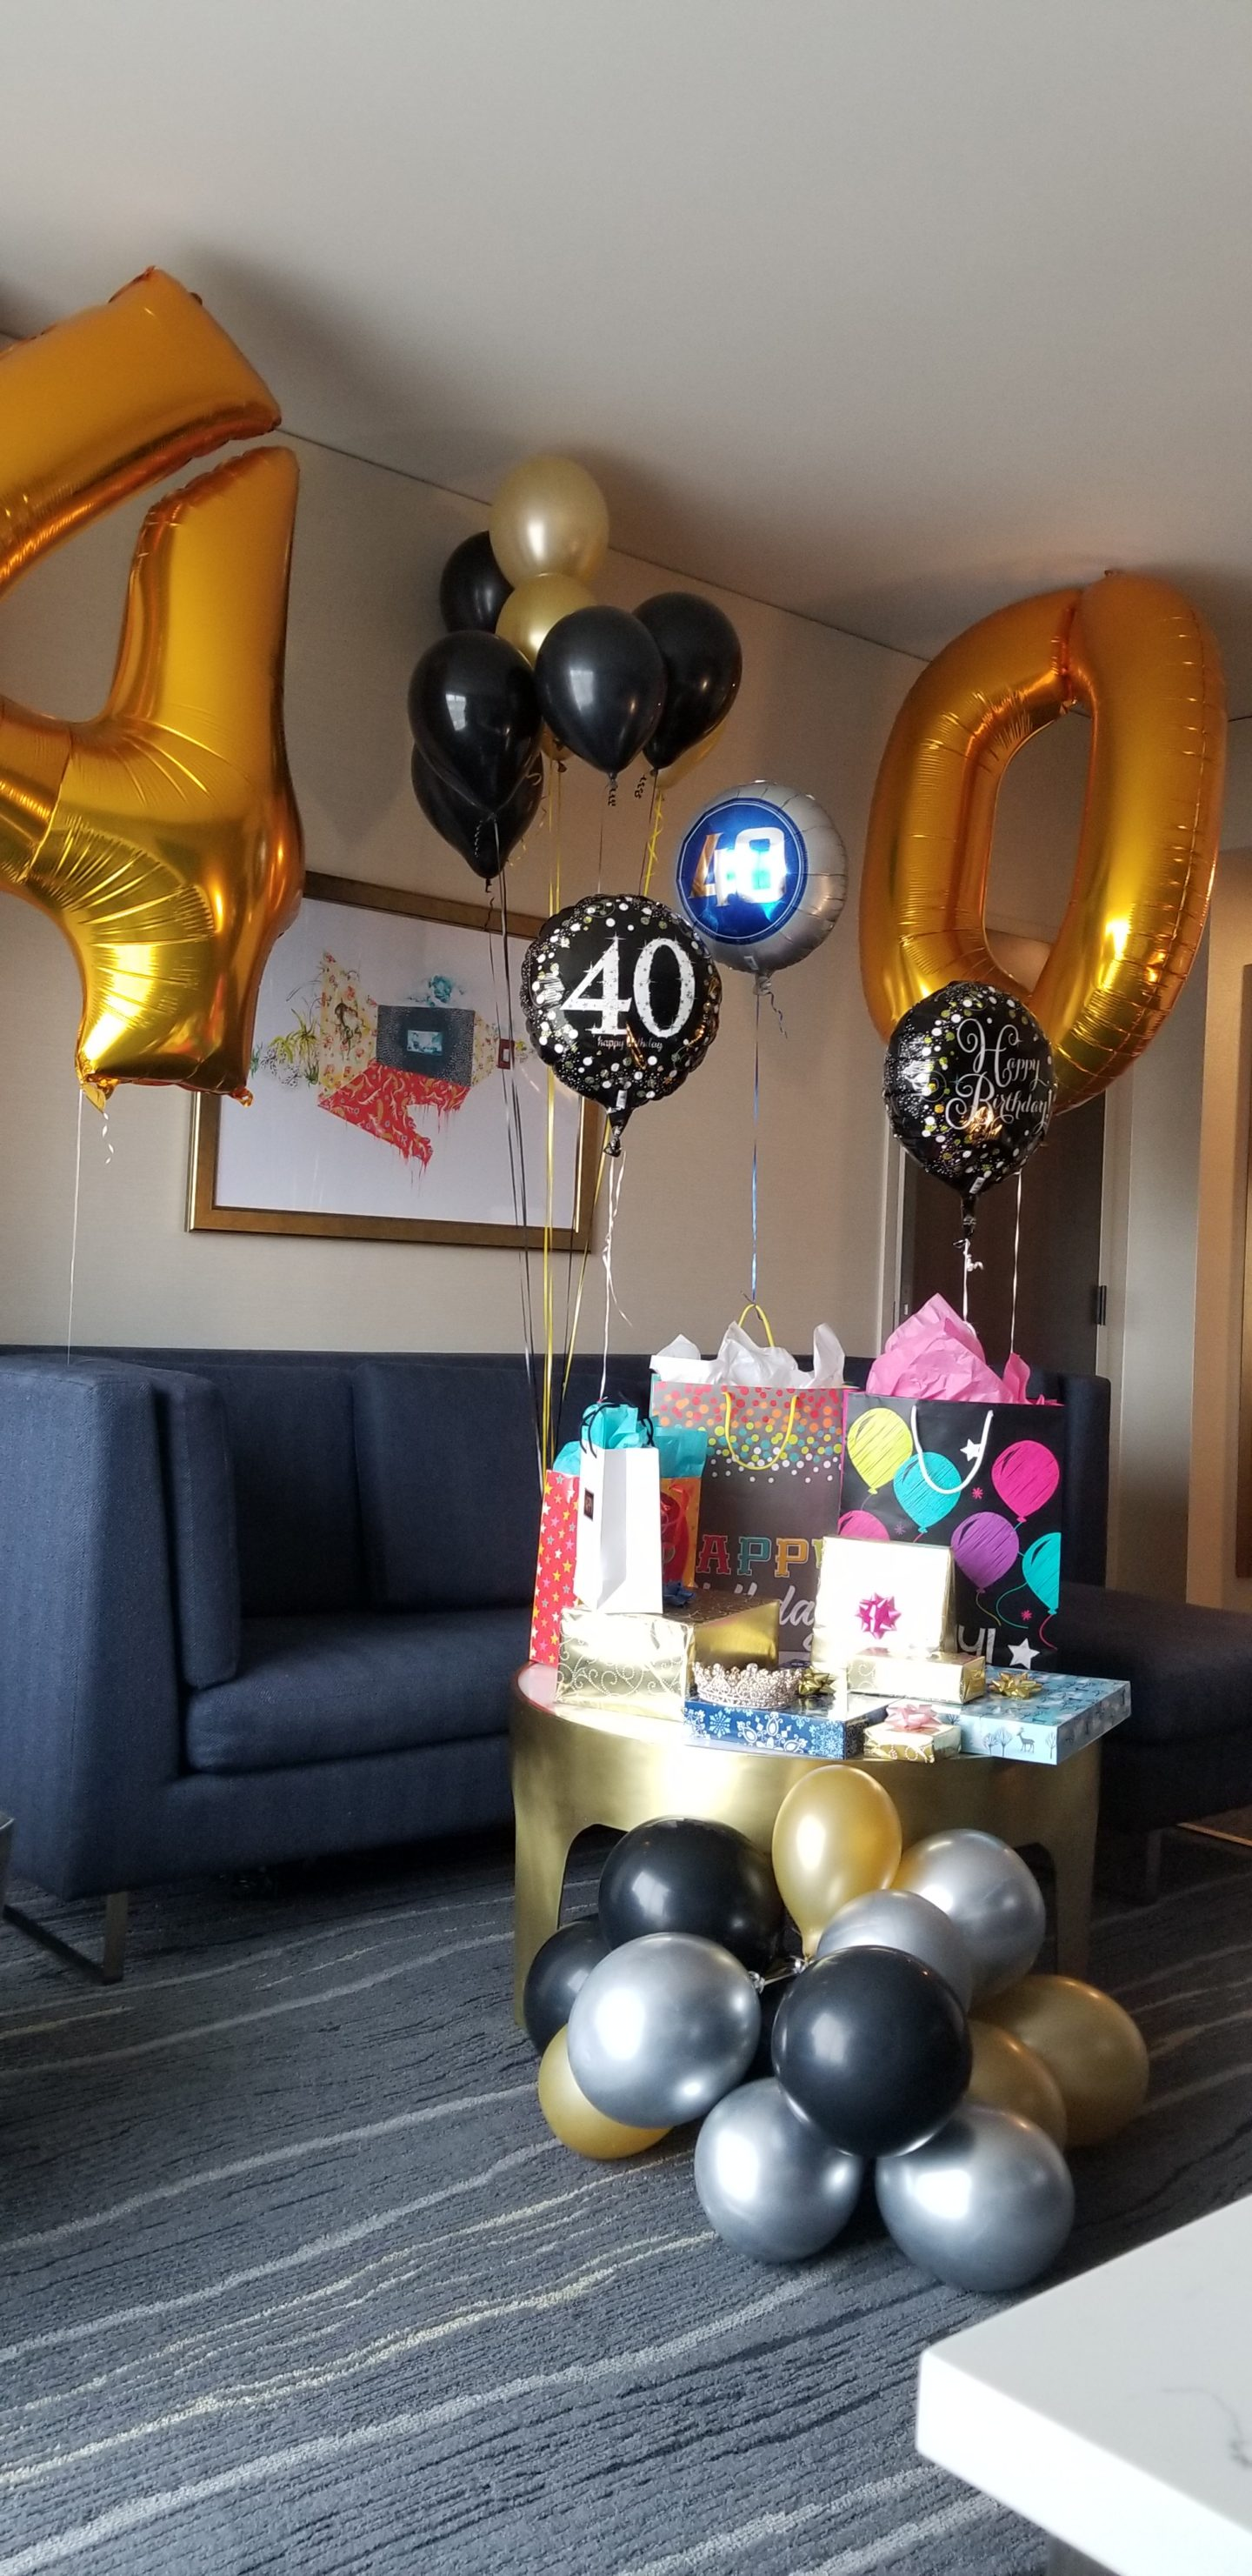 40-balloons-bday-gist-ideas